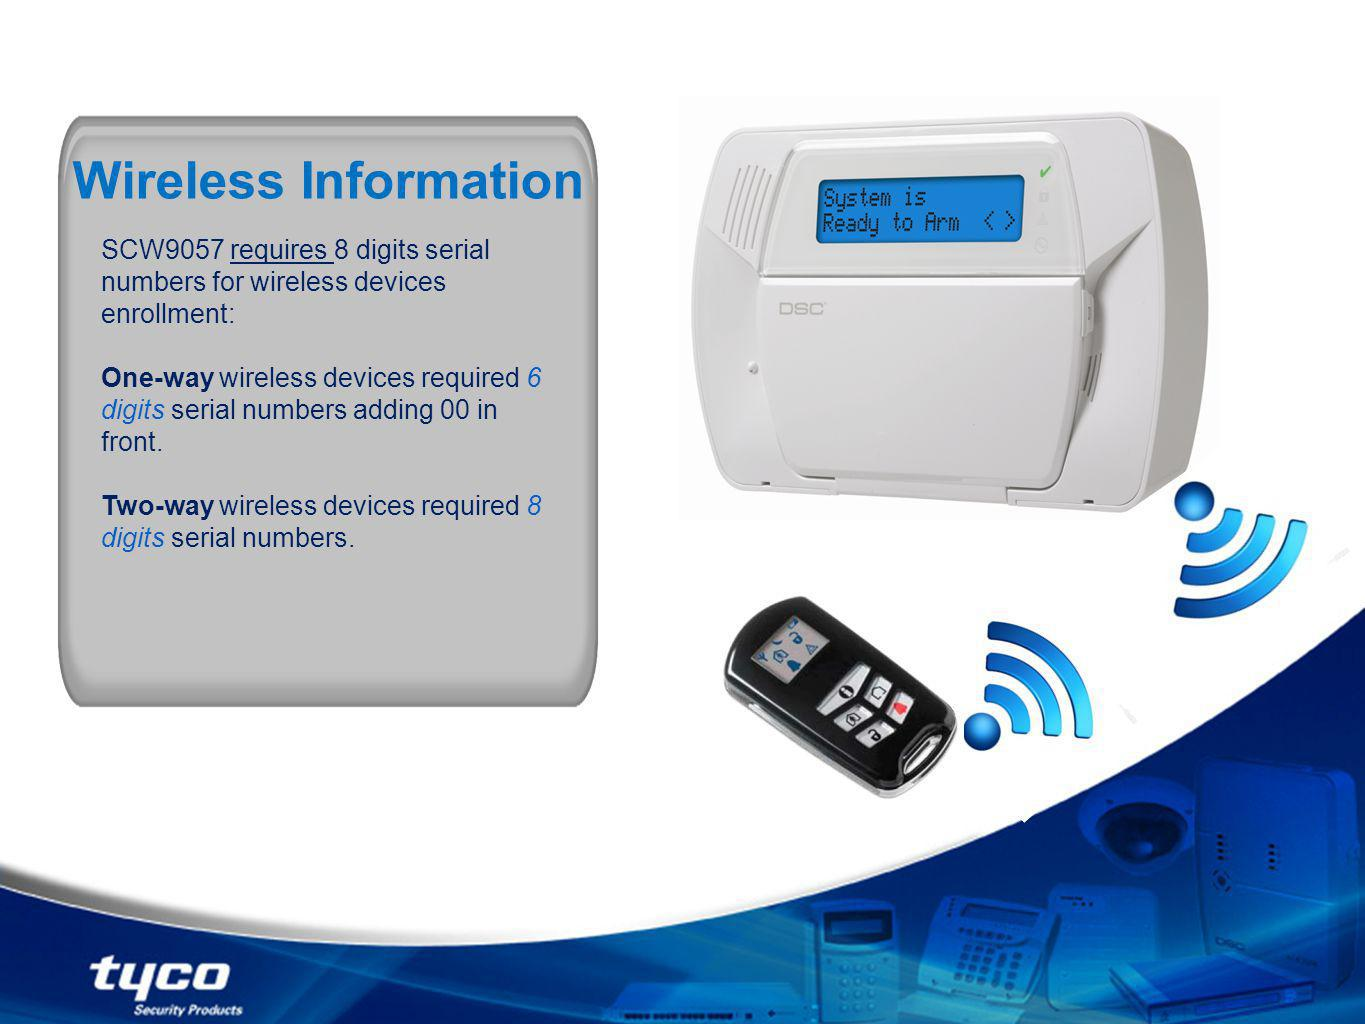 SCW9057 requires 8 digits serial numbers for wireless devices enrollment: 6 digits One-way wireless devices required 6 digits serial numbers adding 00